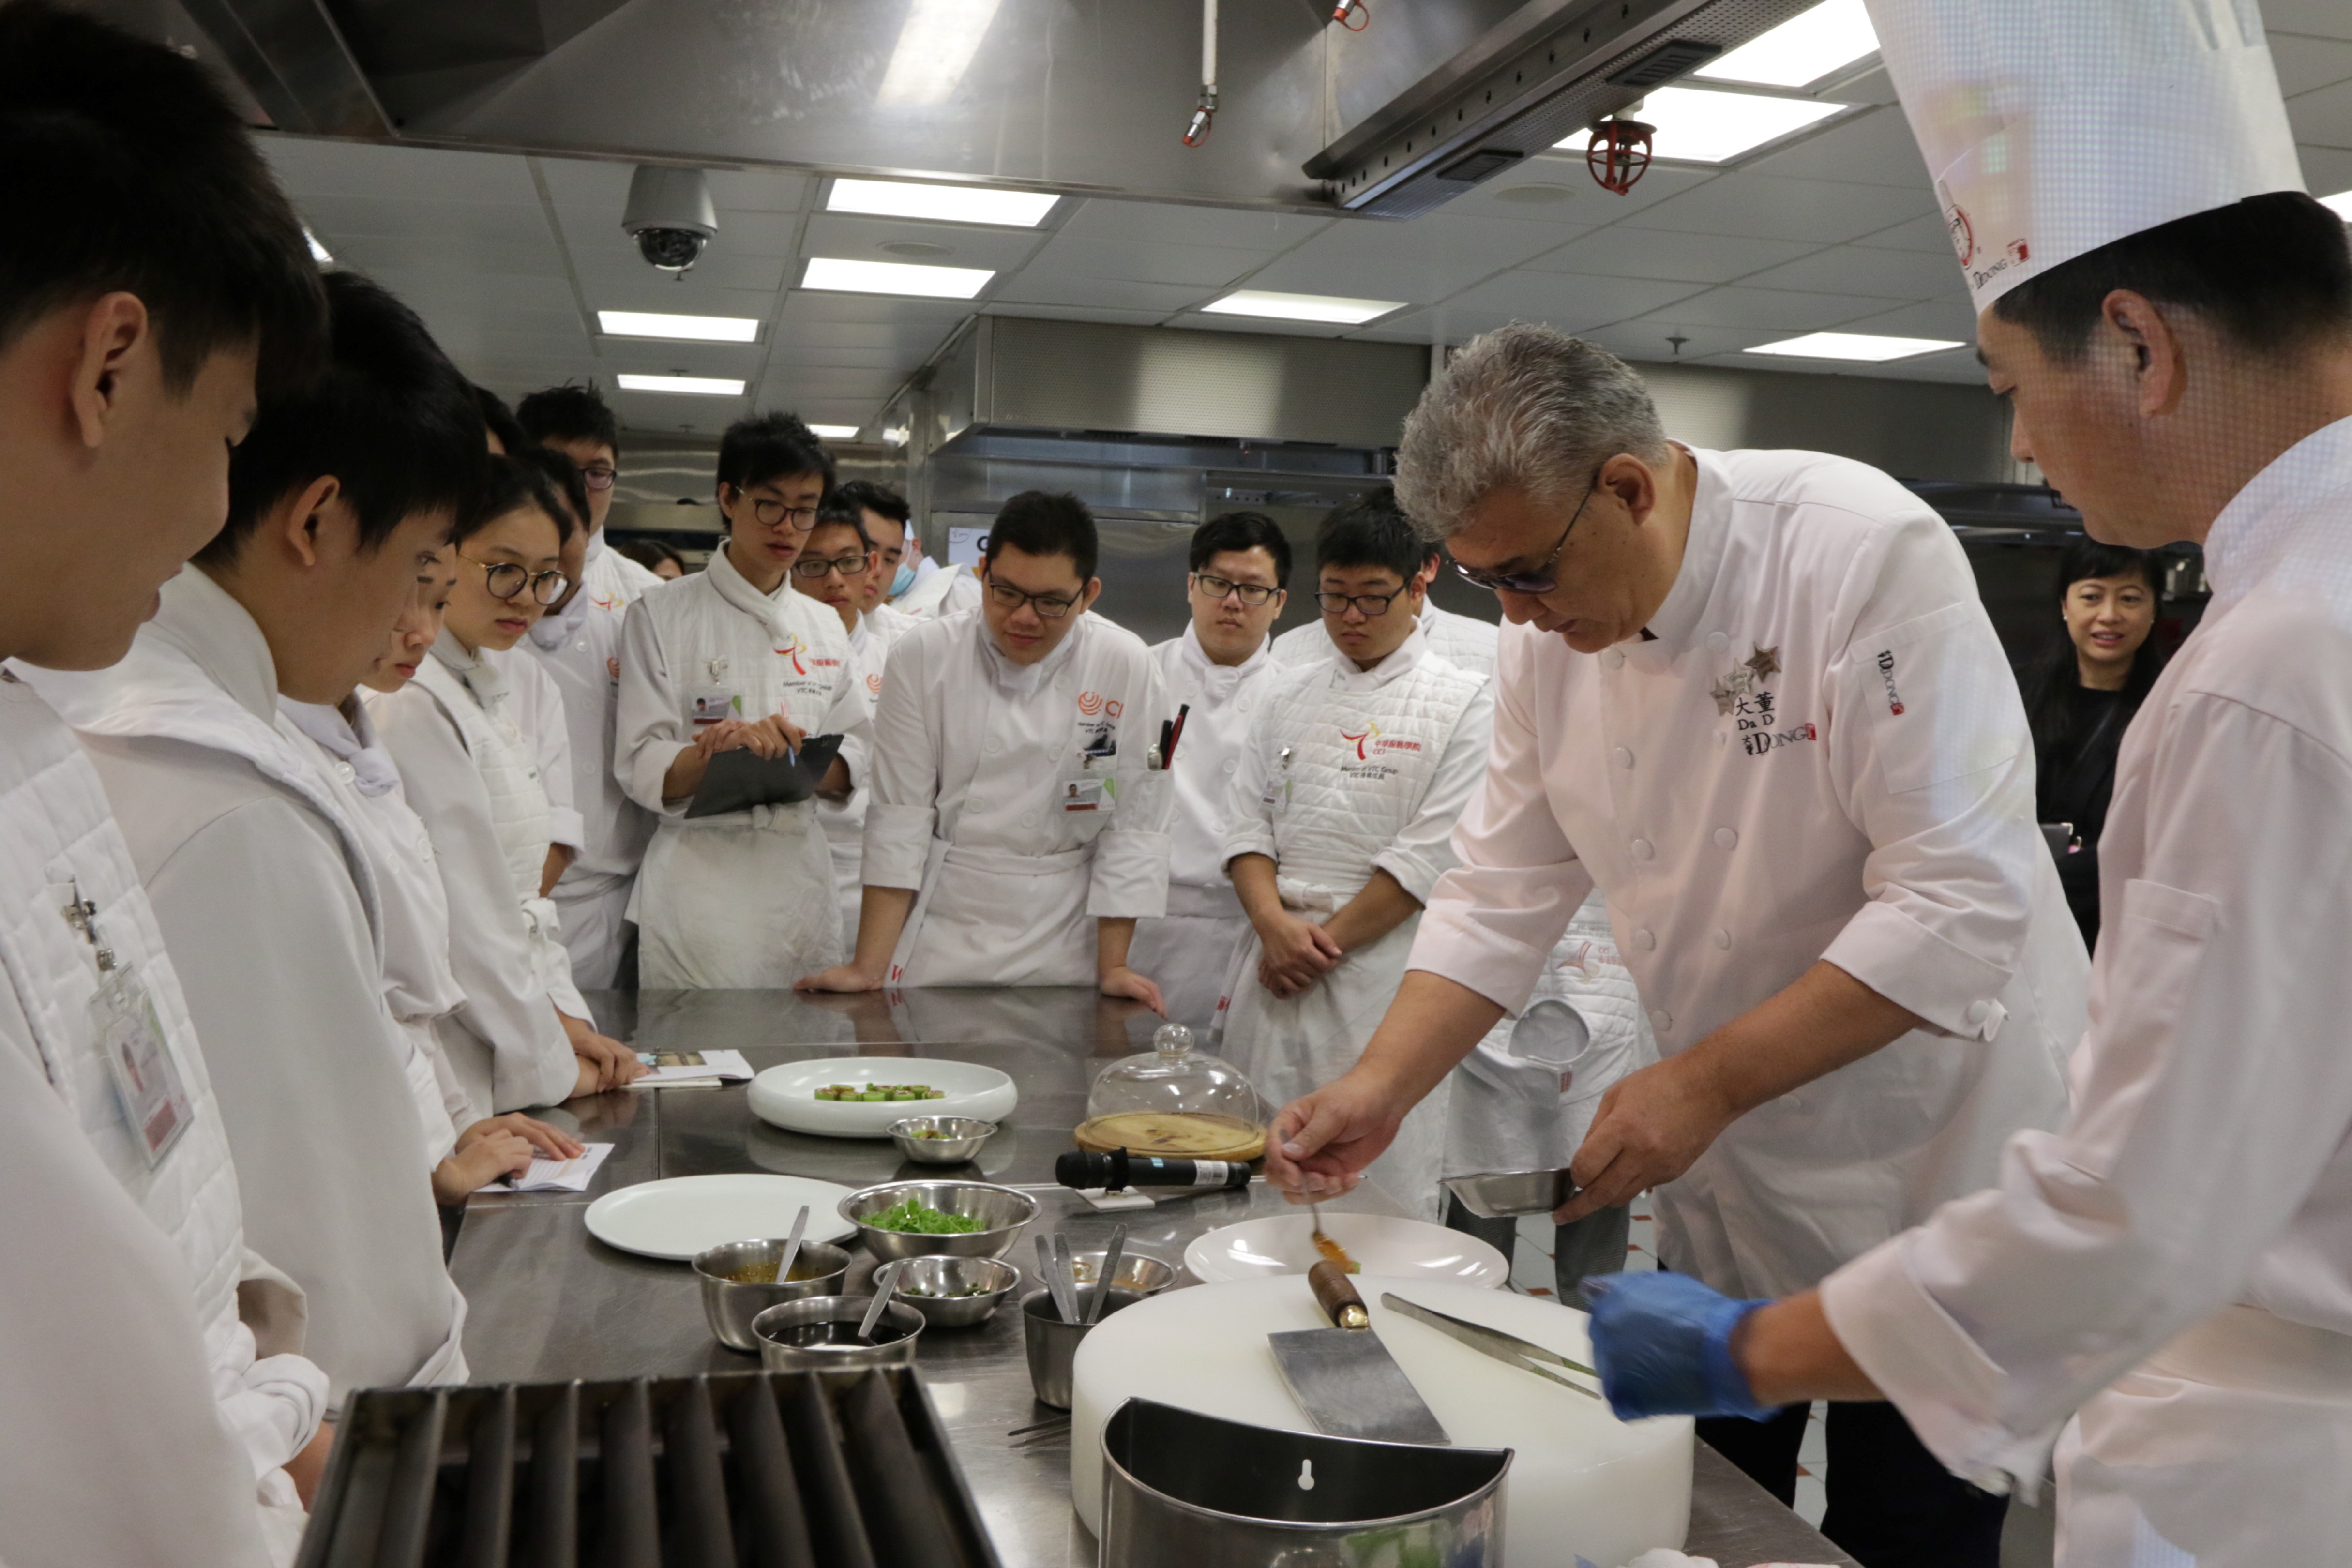 VTC 35 Event: Artistic Interpretation of Chinese Gastronomy Seminar and Theme dinner by Da Dong